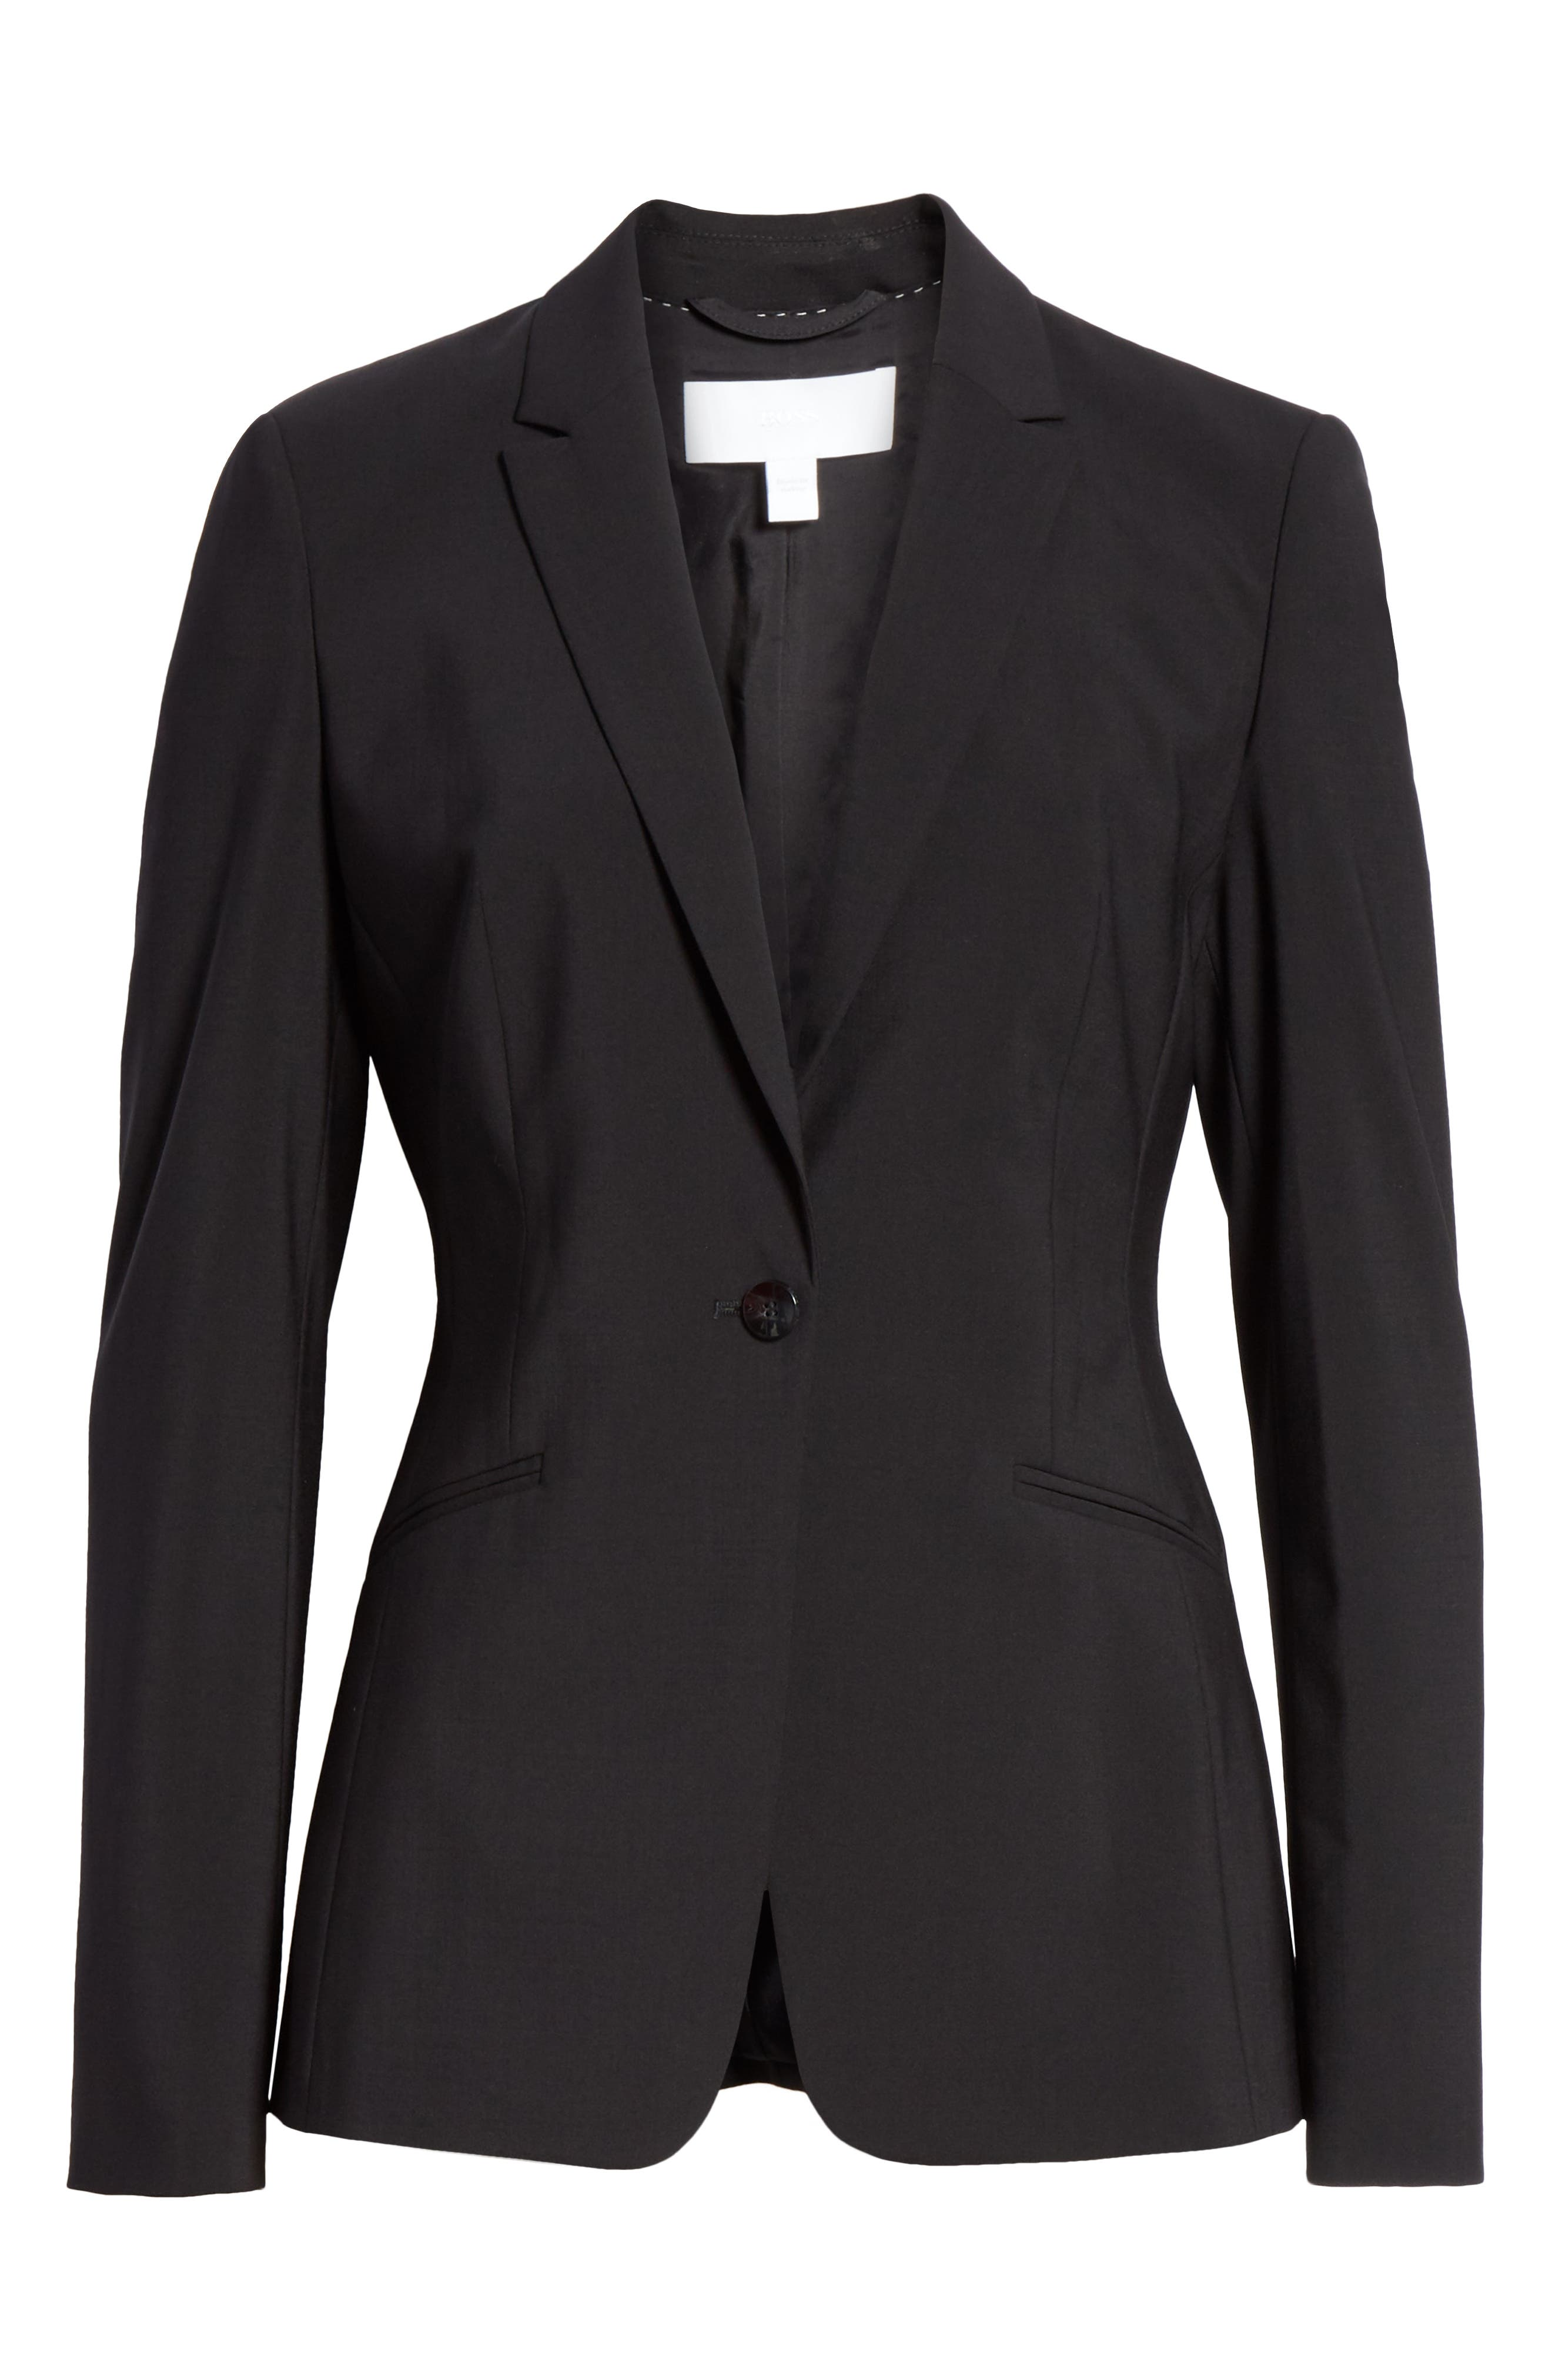 BOSS, Jabina Tropical Stretch Wool Jacket, Alternate thumbnail 6, color, BLACK